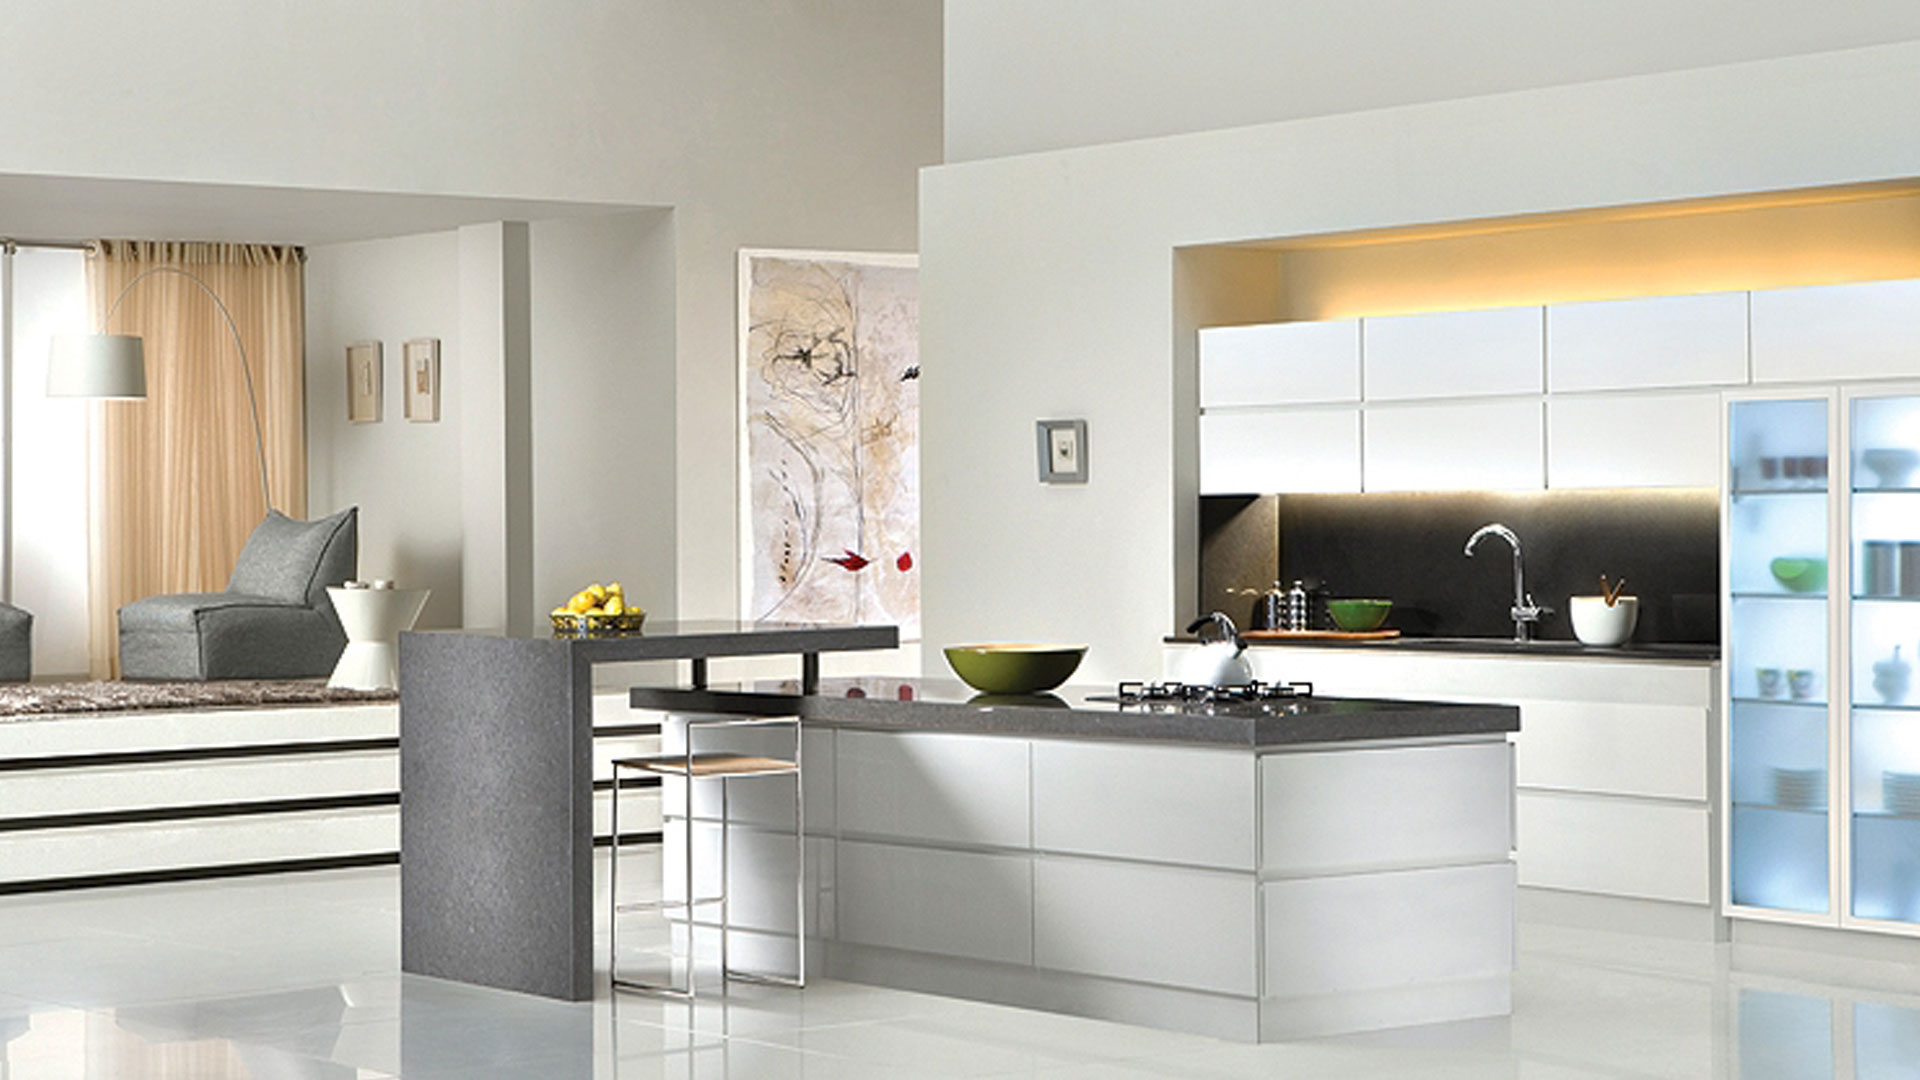 Kitchen design concepts edition